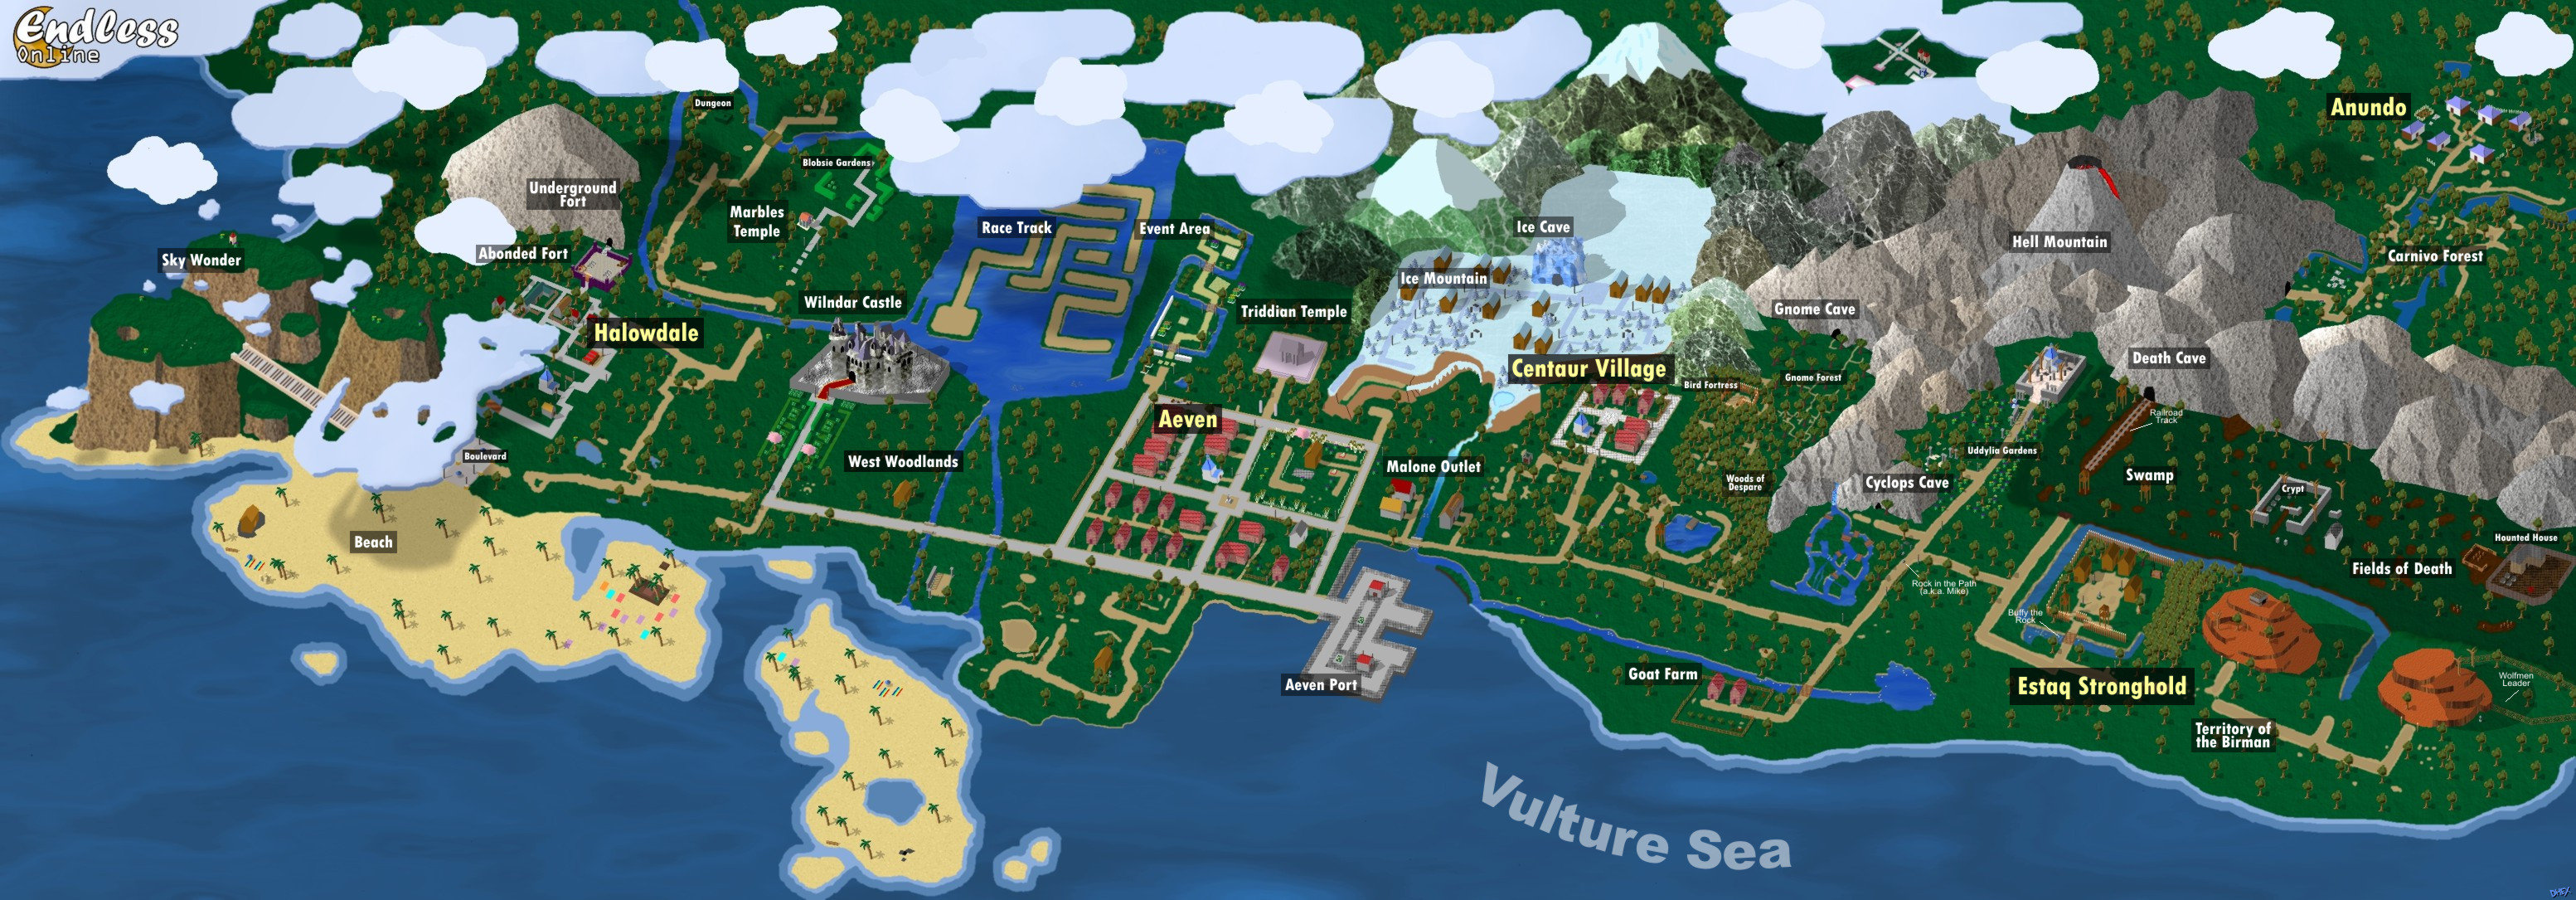 Map endless online wiki fandom powered by wikia eomapbig1oi4 beautified map gumiabroncs Gallery